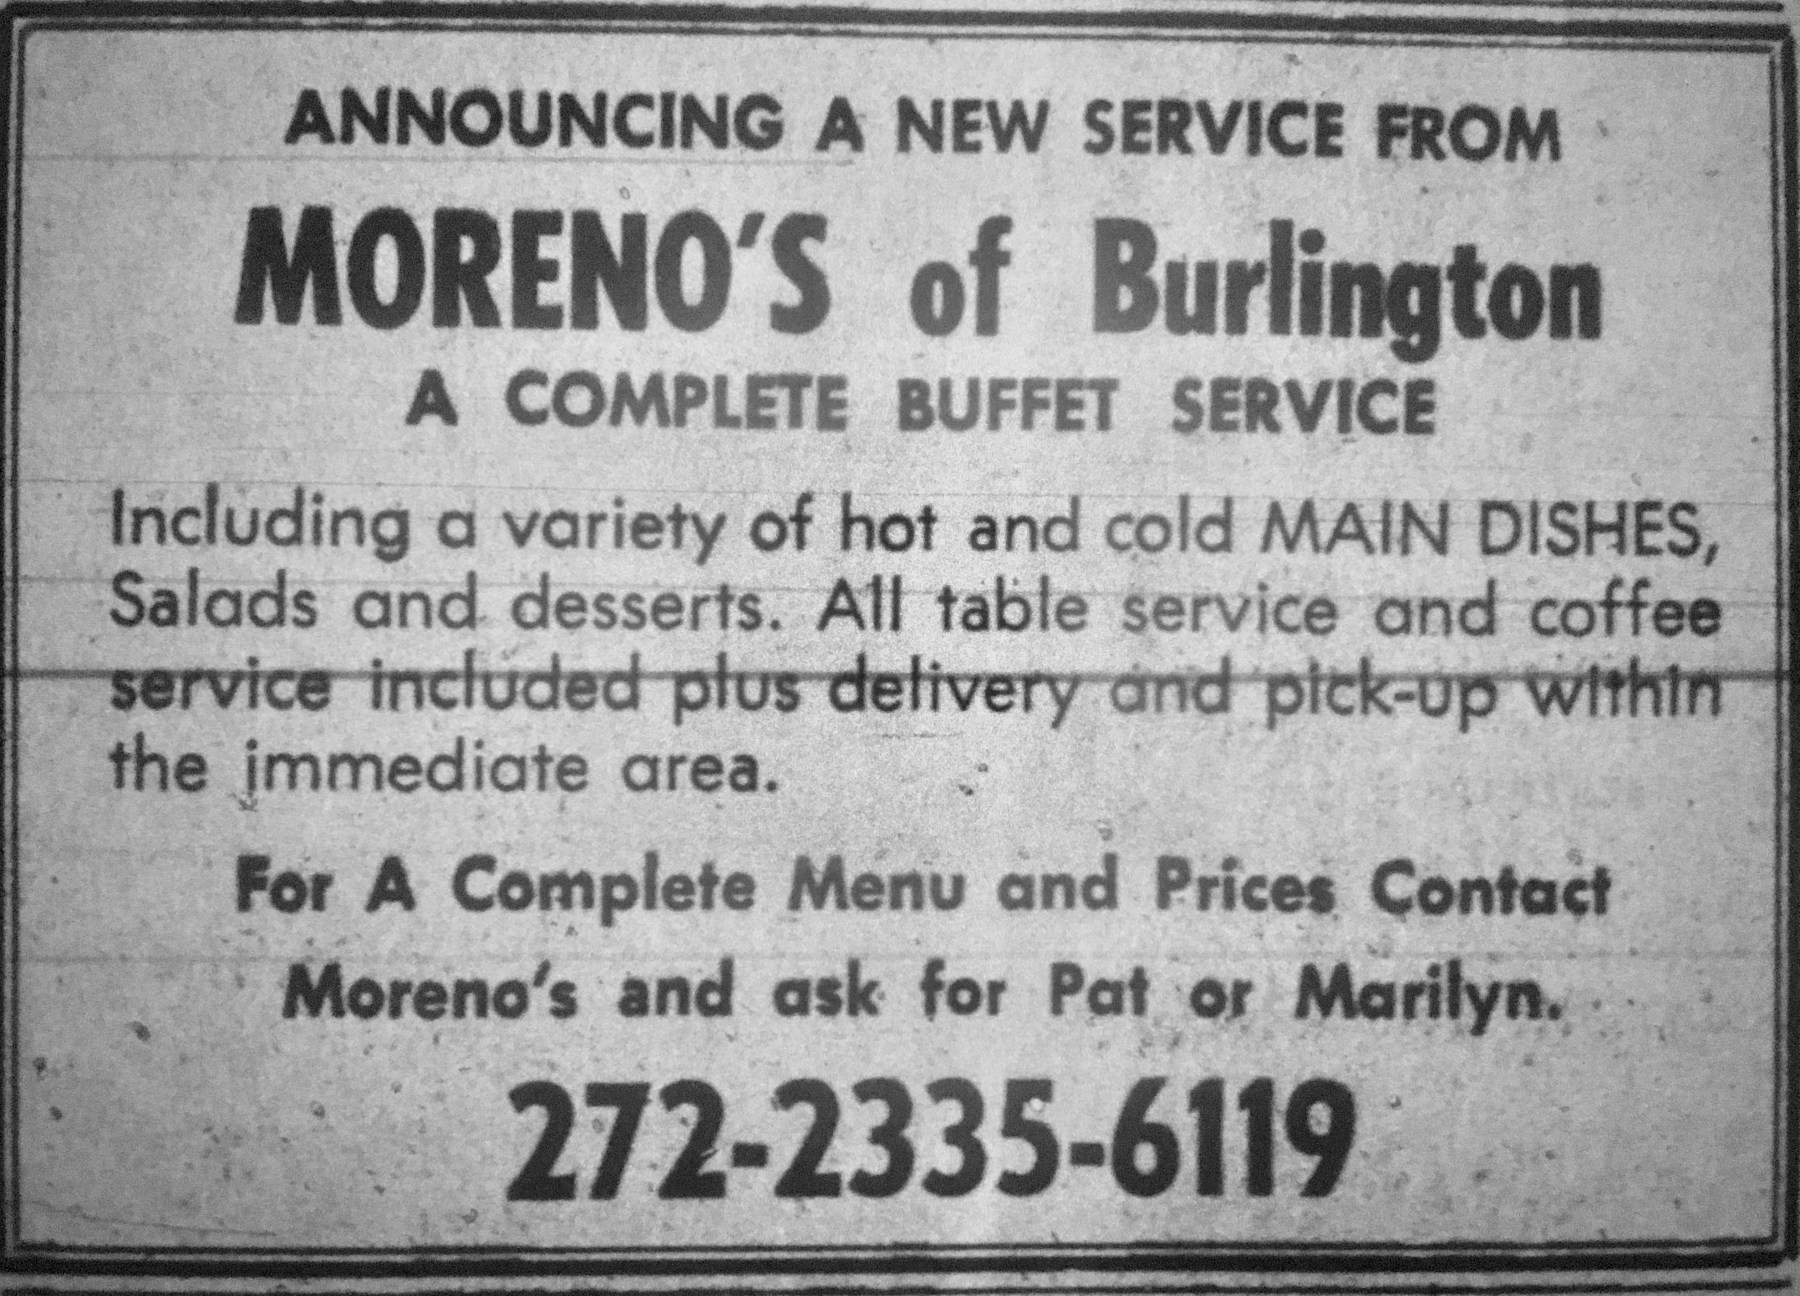 Moreno's of Burlington, MA